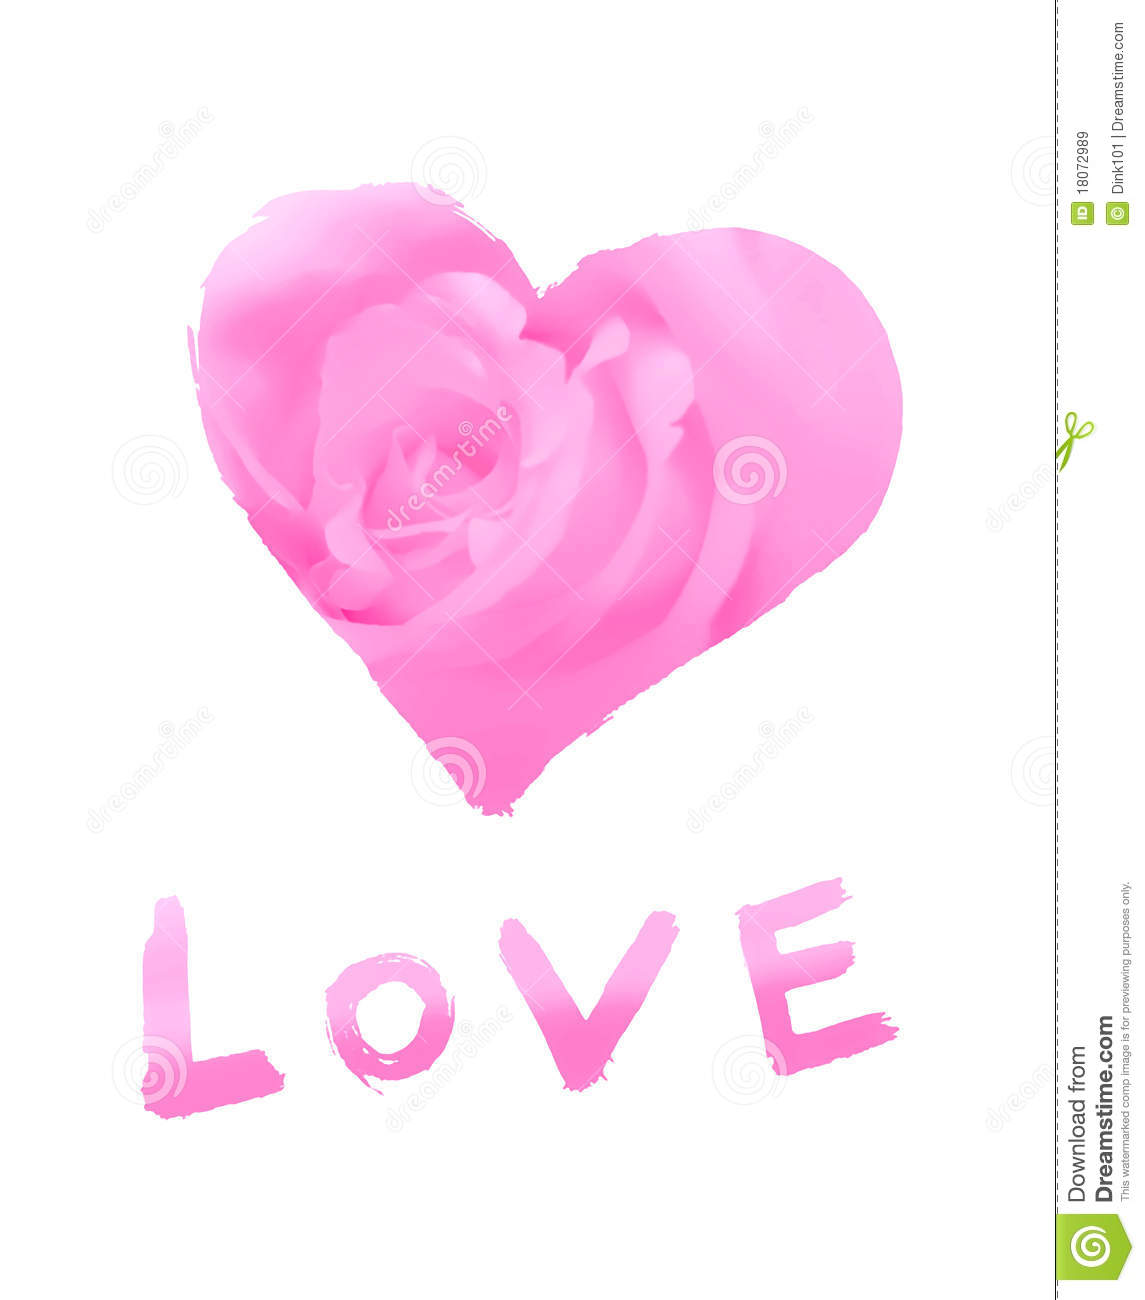 Stylized love symbol with word   love